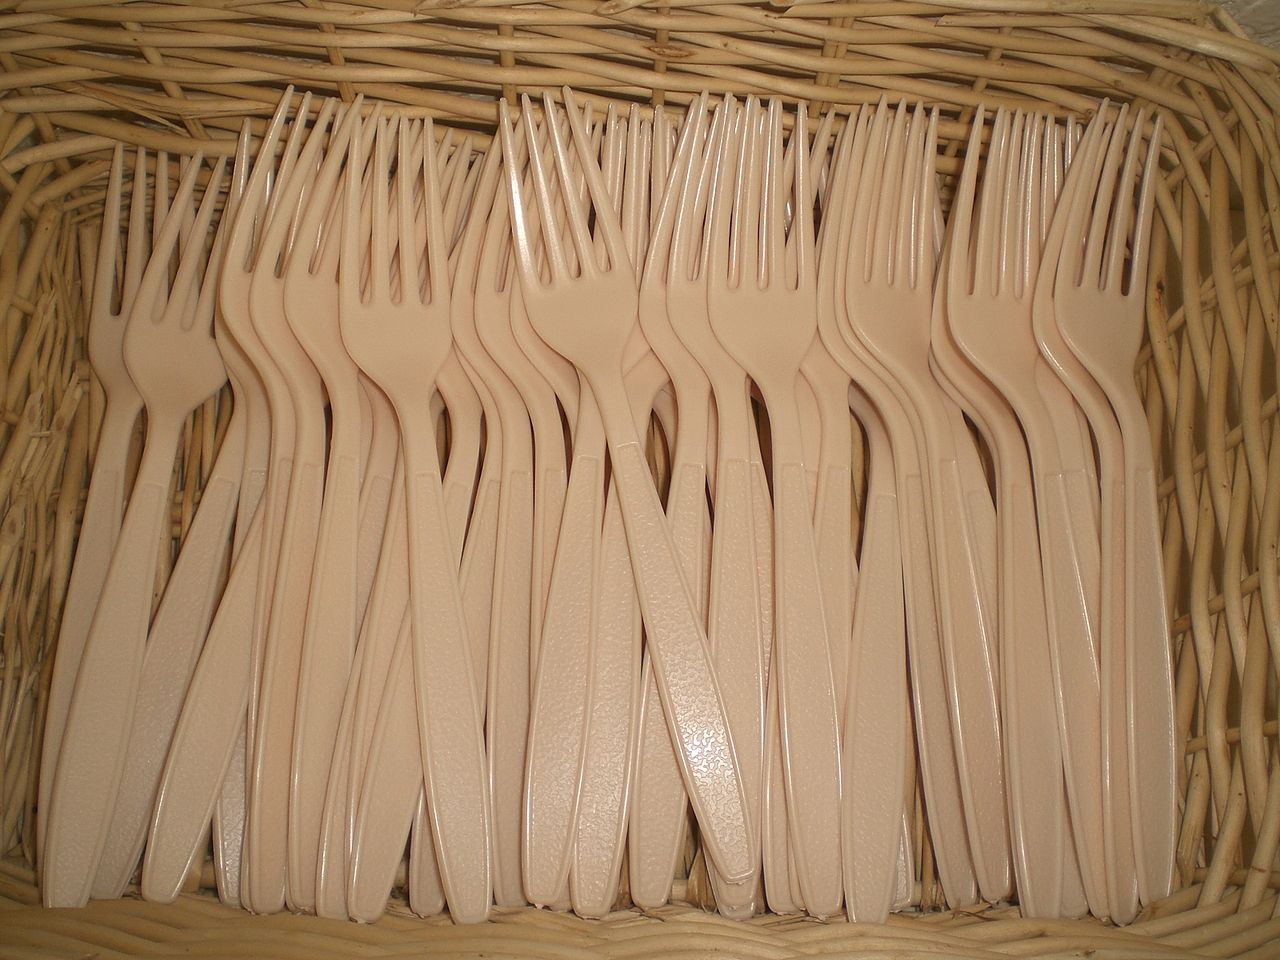 Plastic forks by Hoitintungs Wikimedia Commons